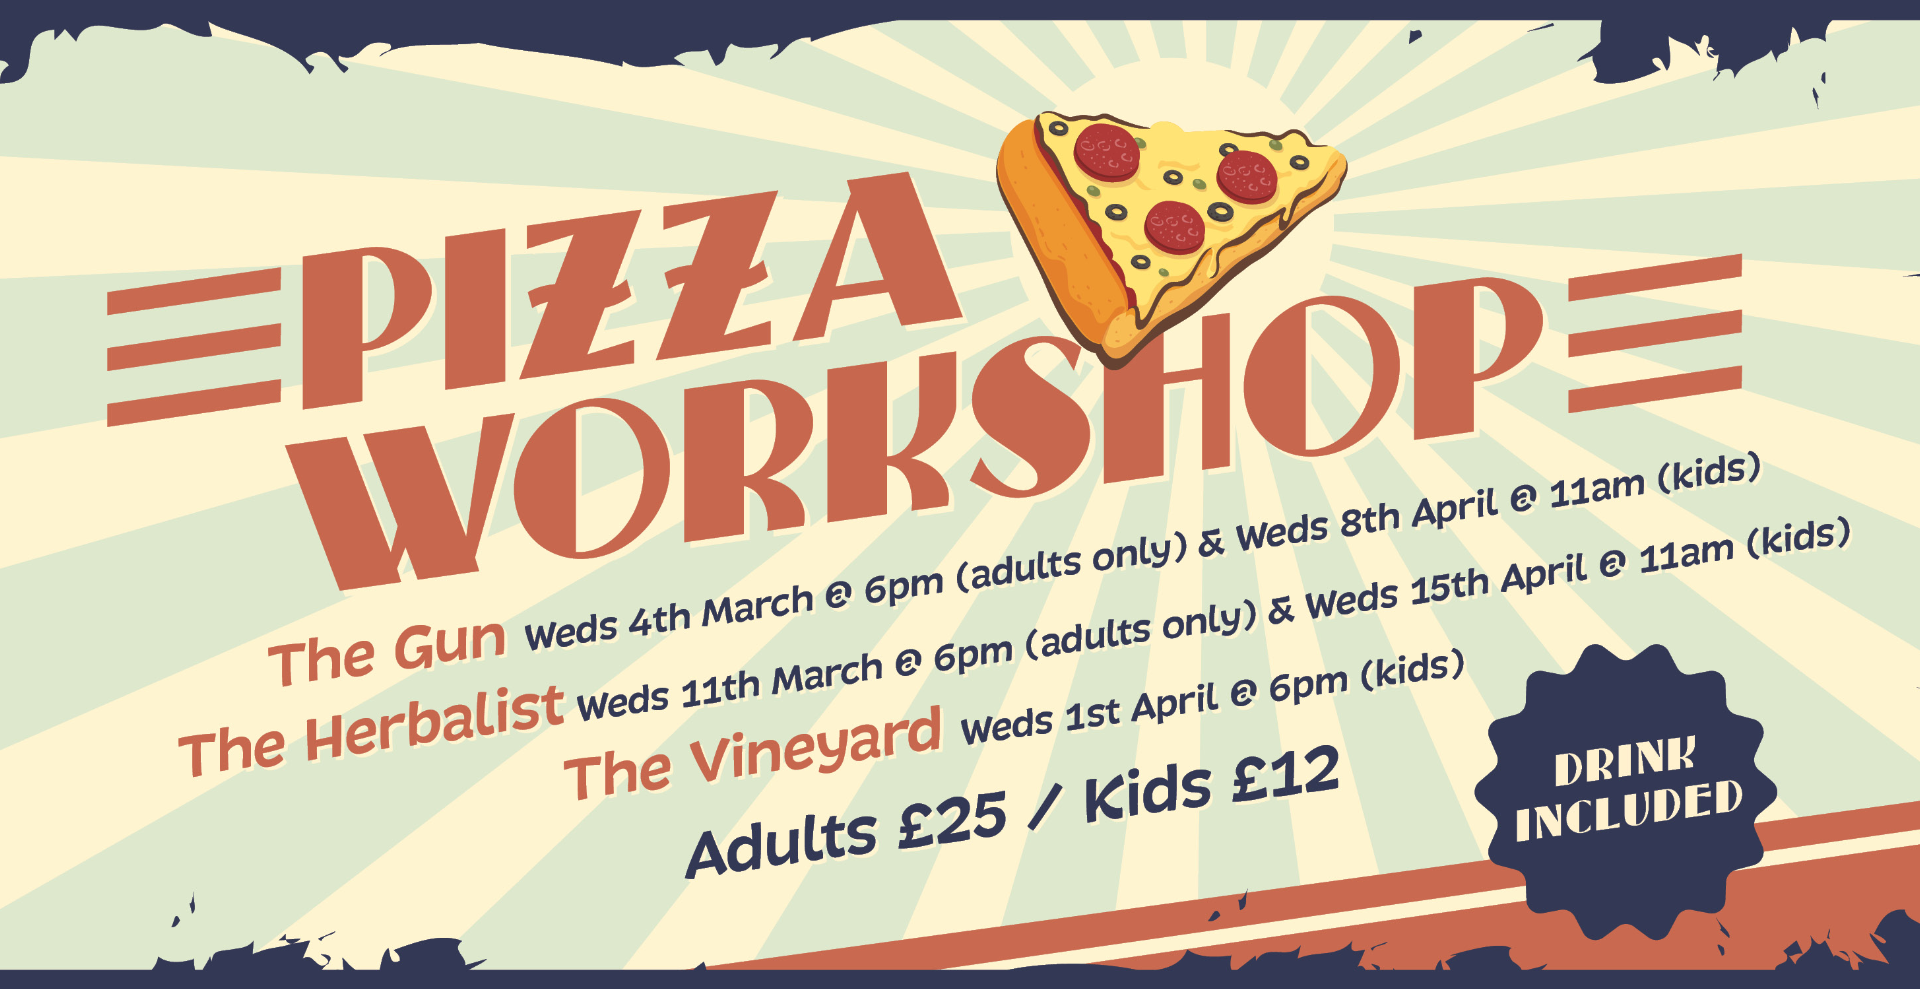 Kids Pizza Workshop